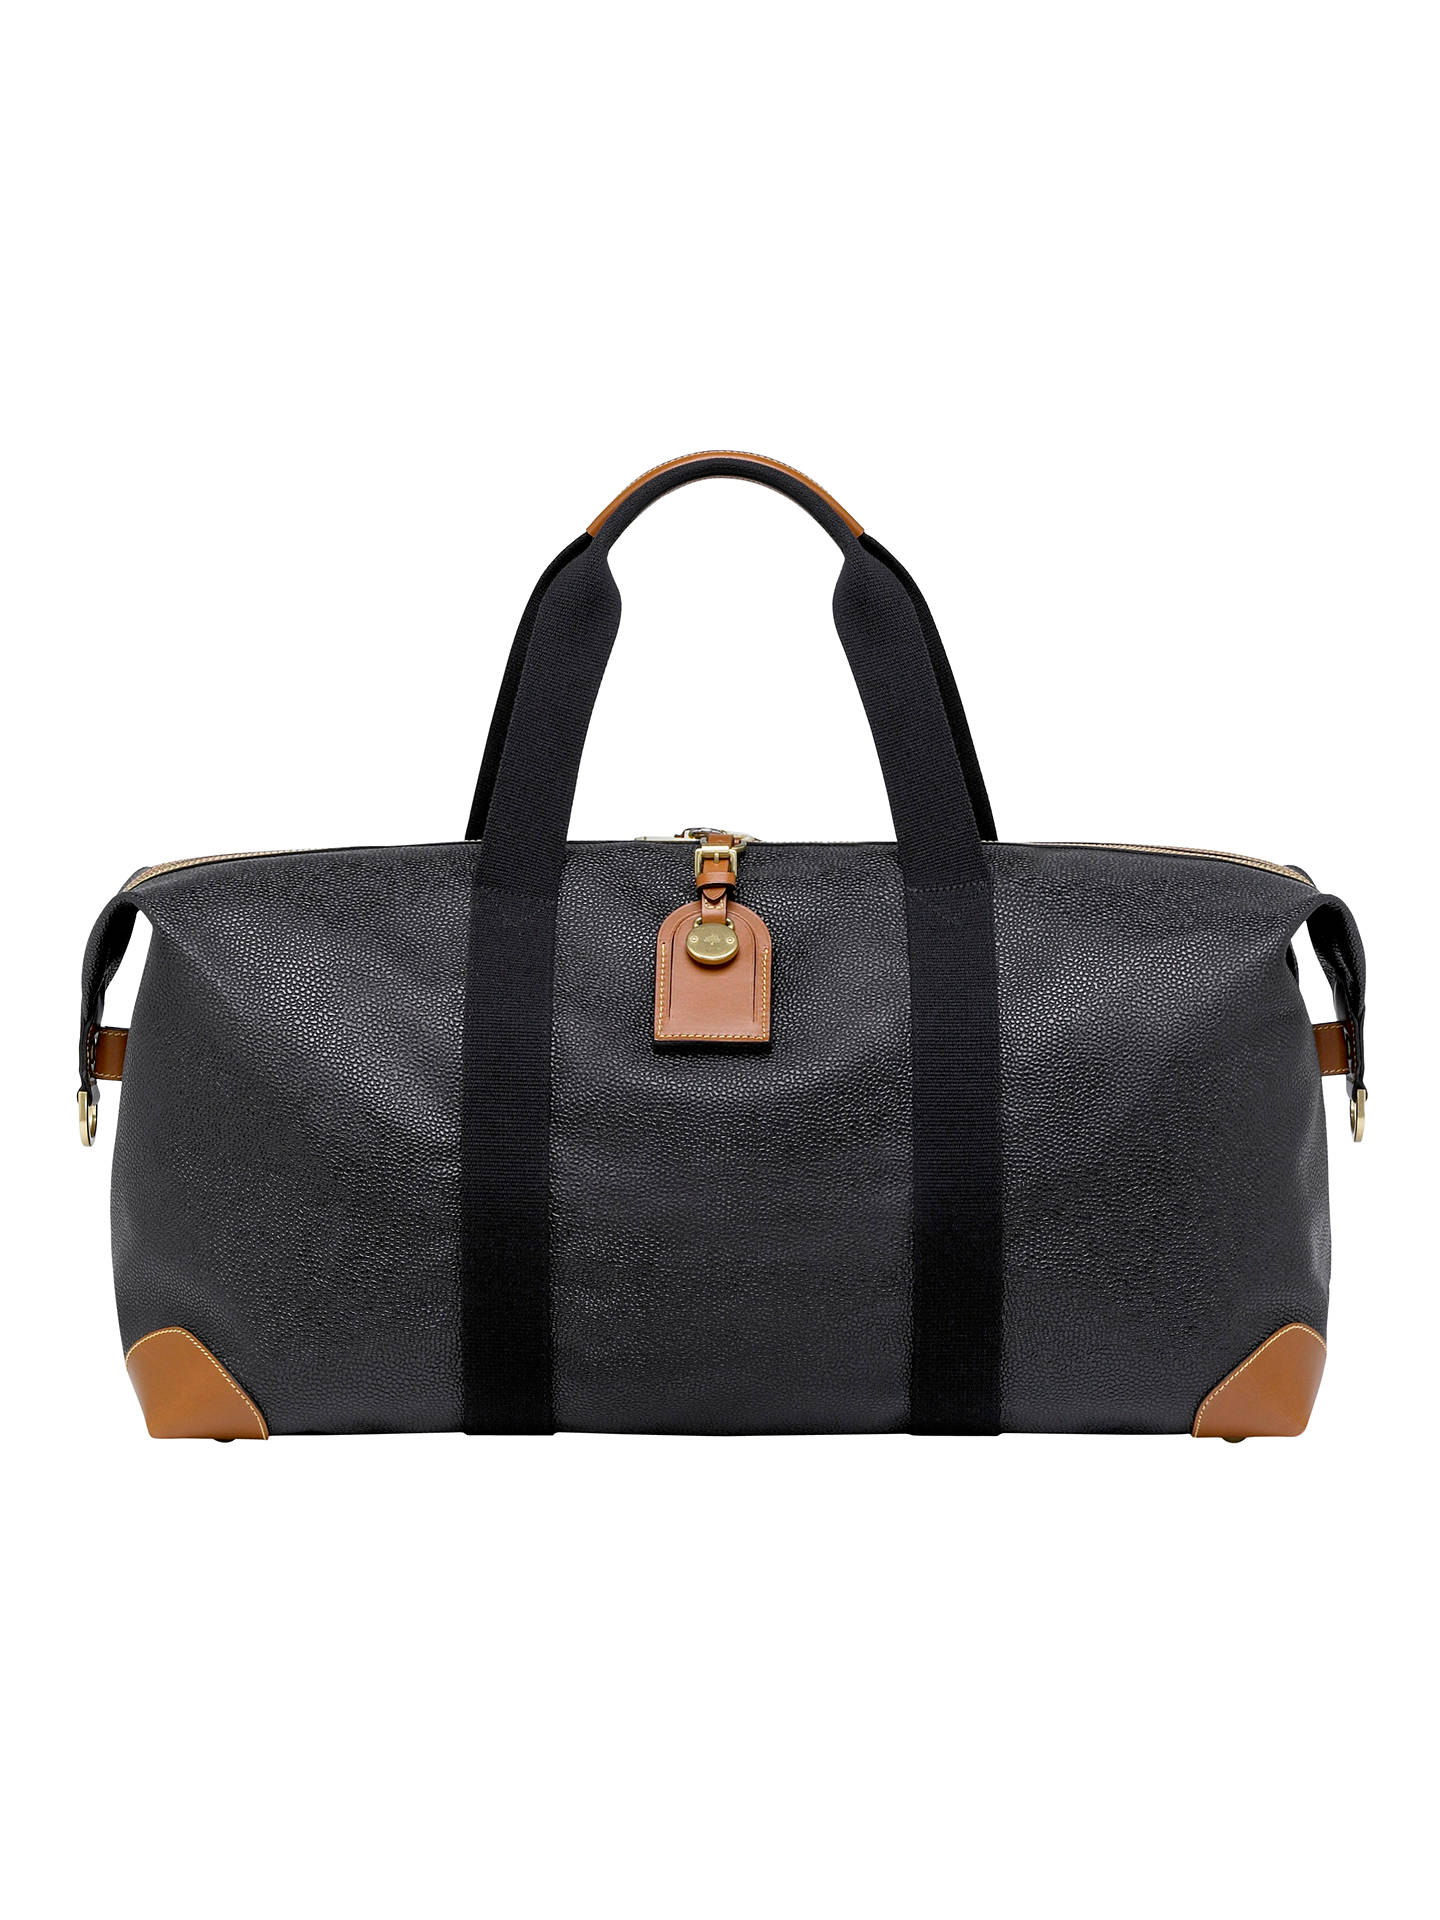 BuyMulberry Scotchgrain Clipper Holdall, Black/Cognac, One size Online at johnlewis.com